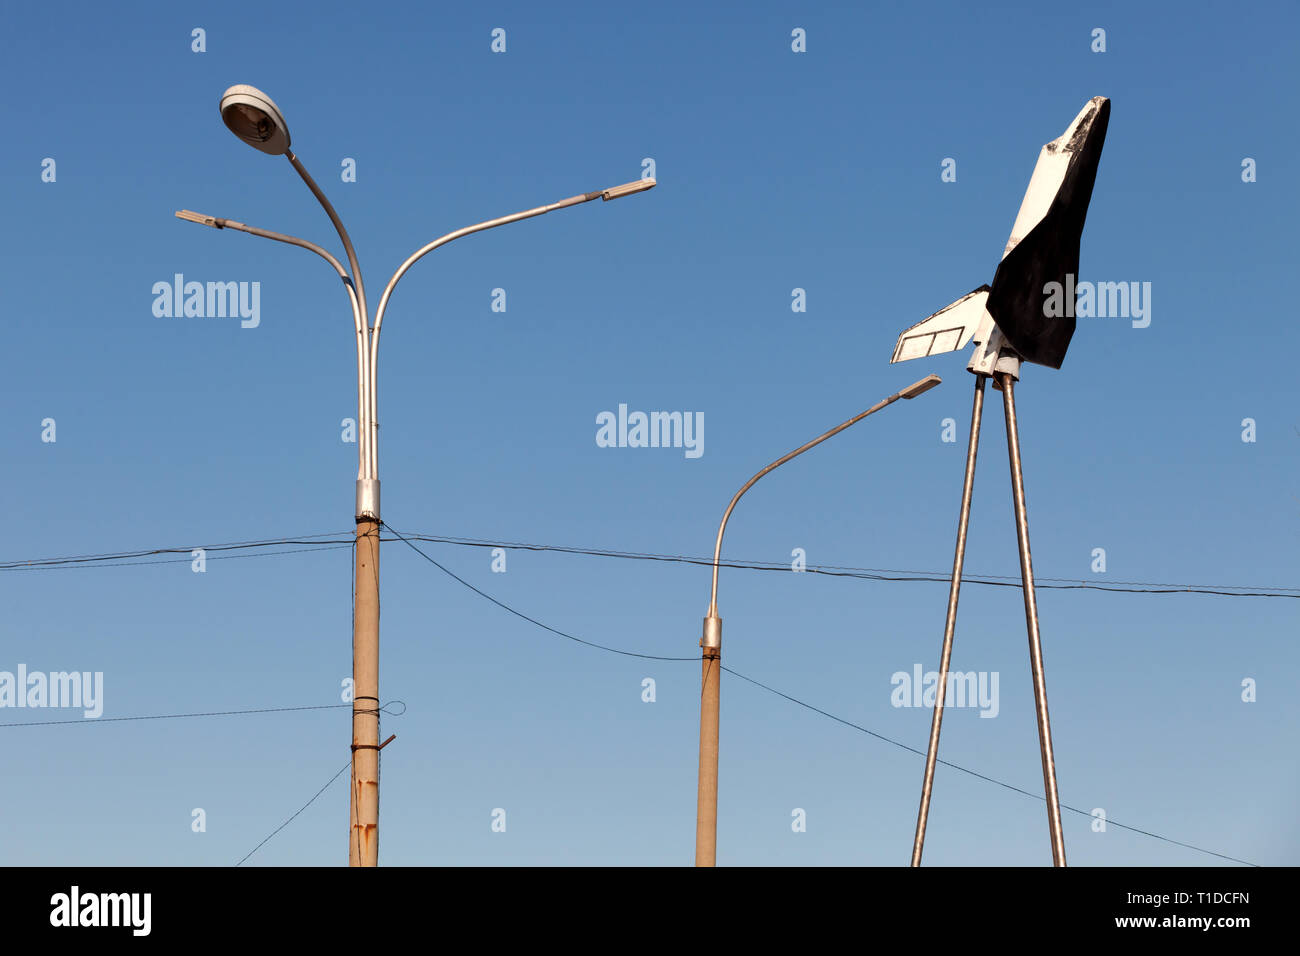 BAIKONUR - A model of the Buran space shuttle at a checkpoint in the Russian administered town of Baikonur. - Stock Image